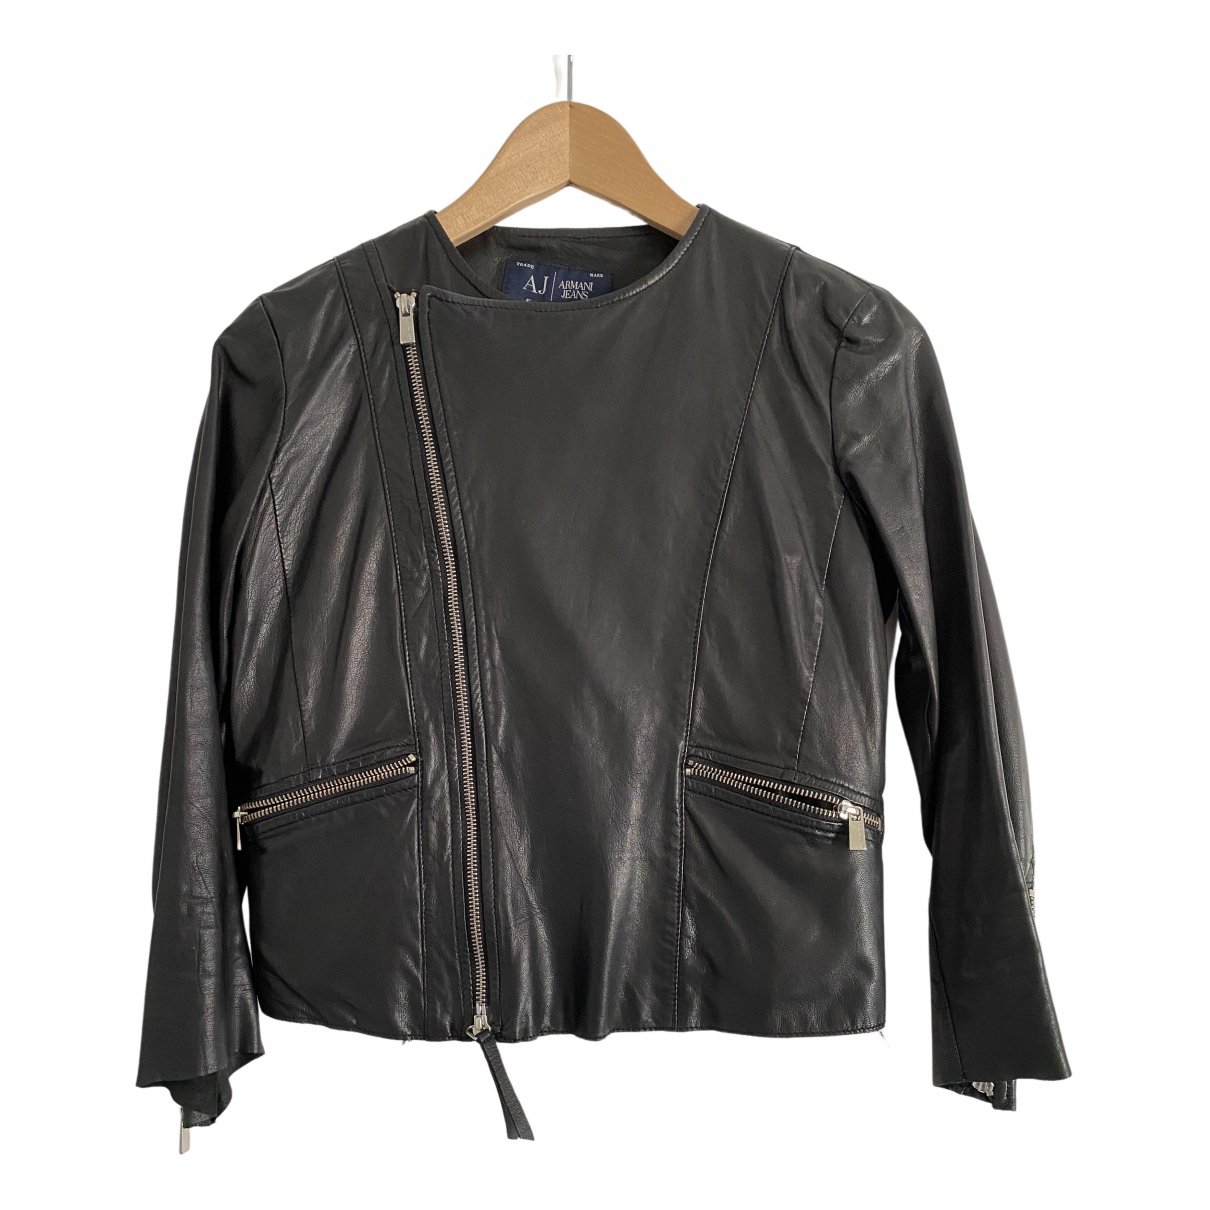 Armani Jeans N Black Leather Leather jacket for Women 38 IT